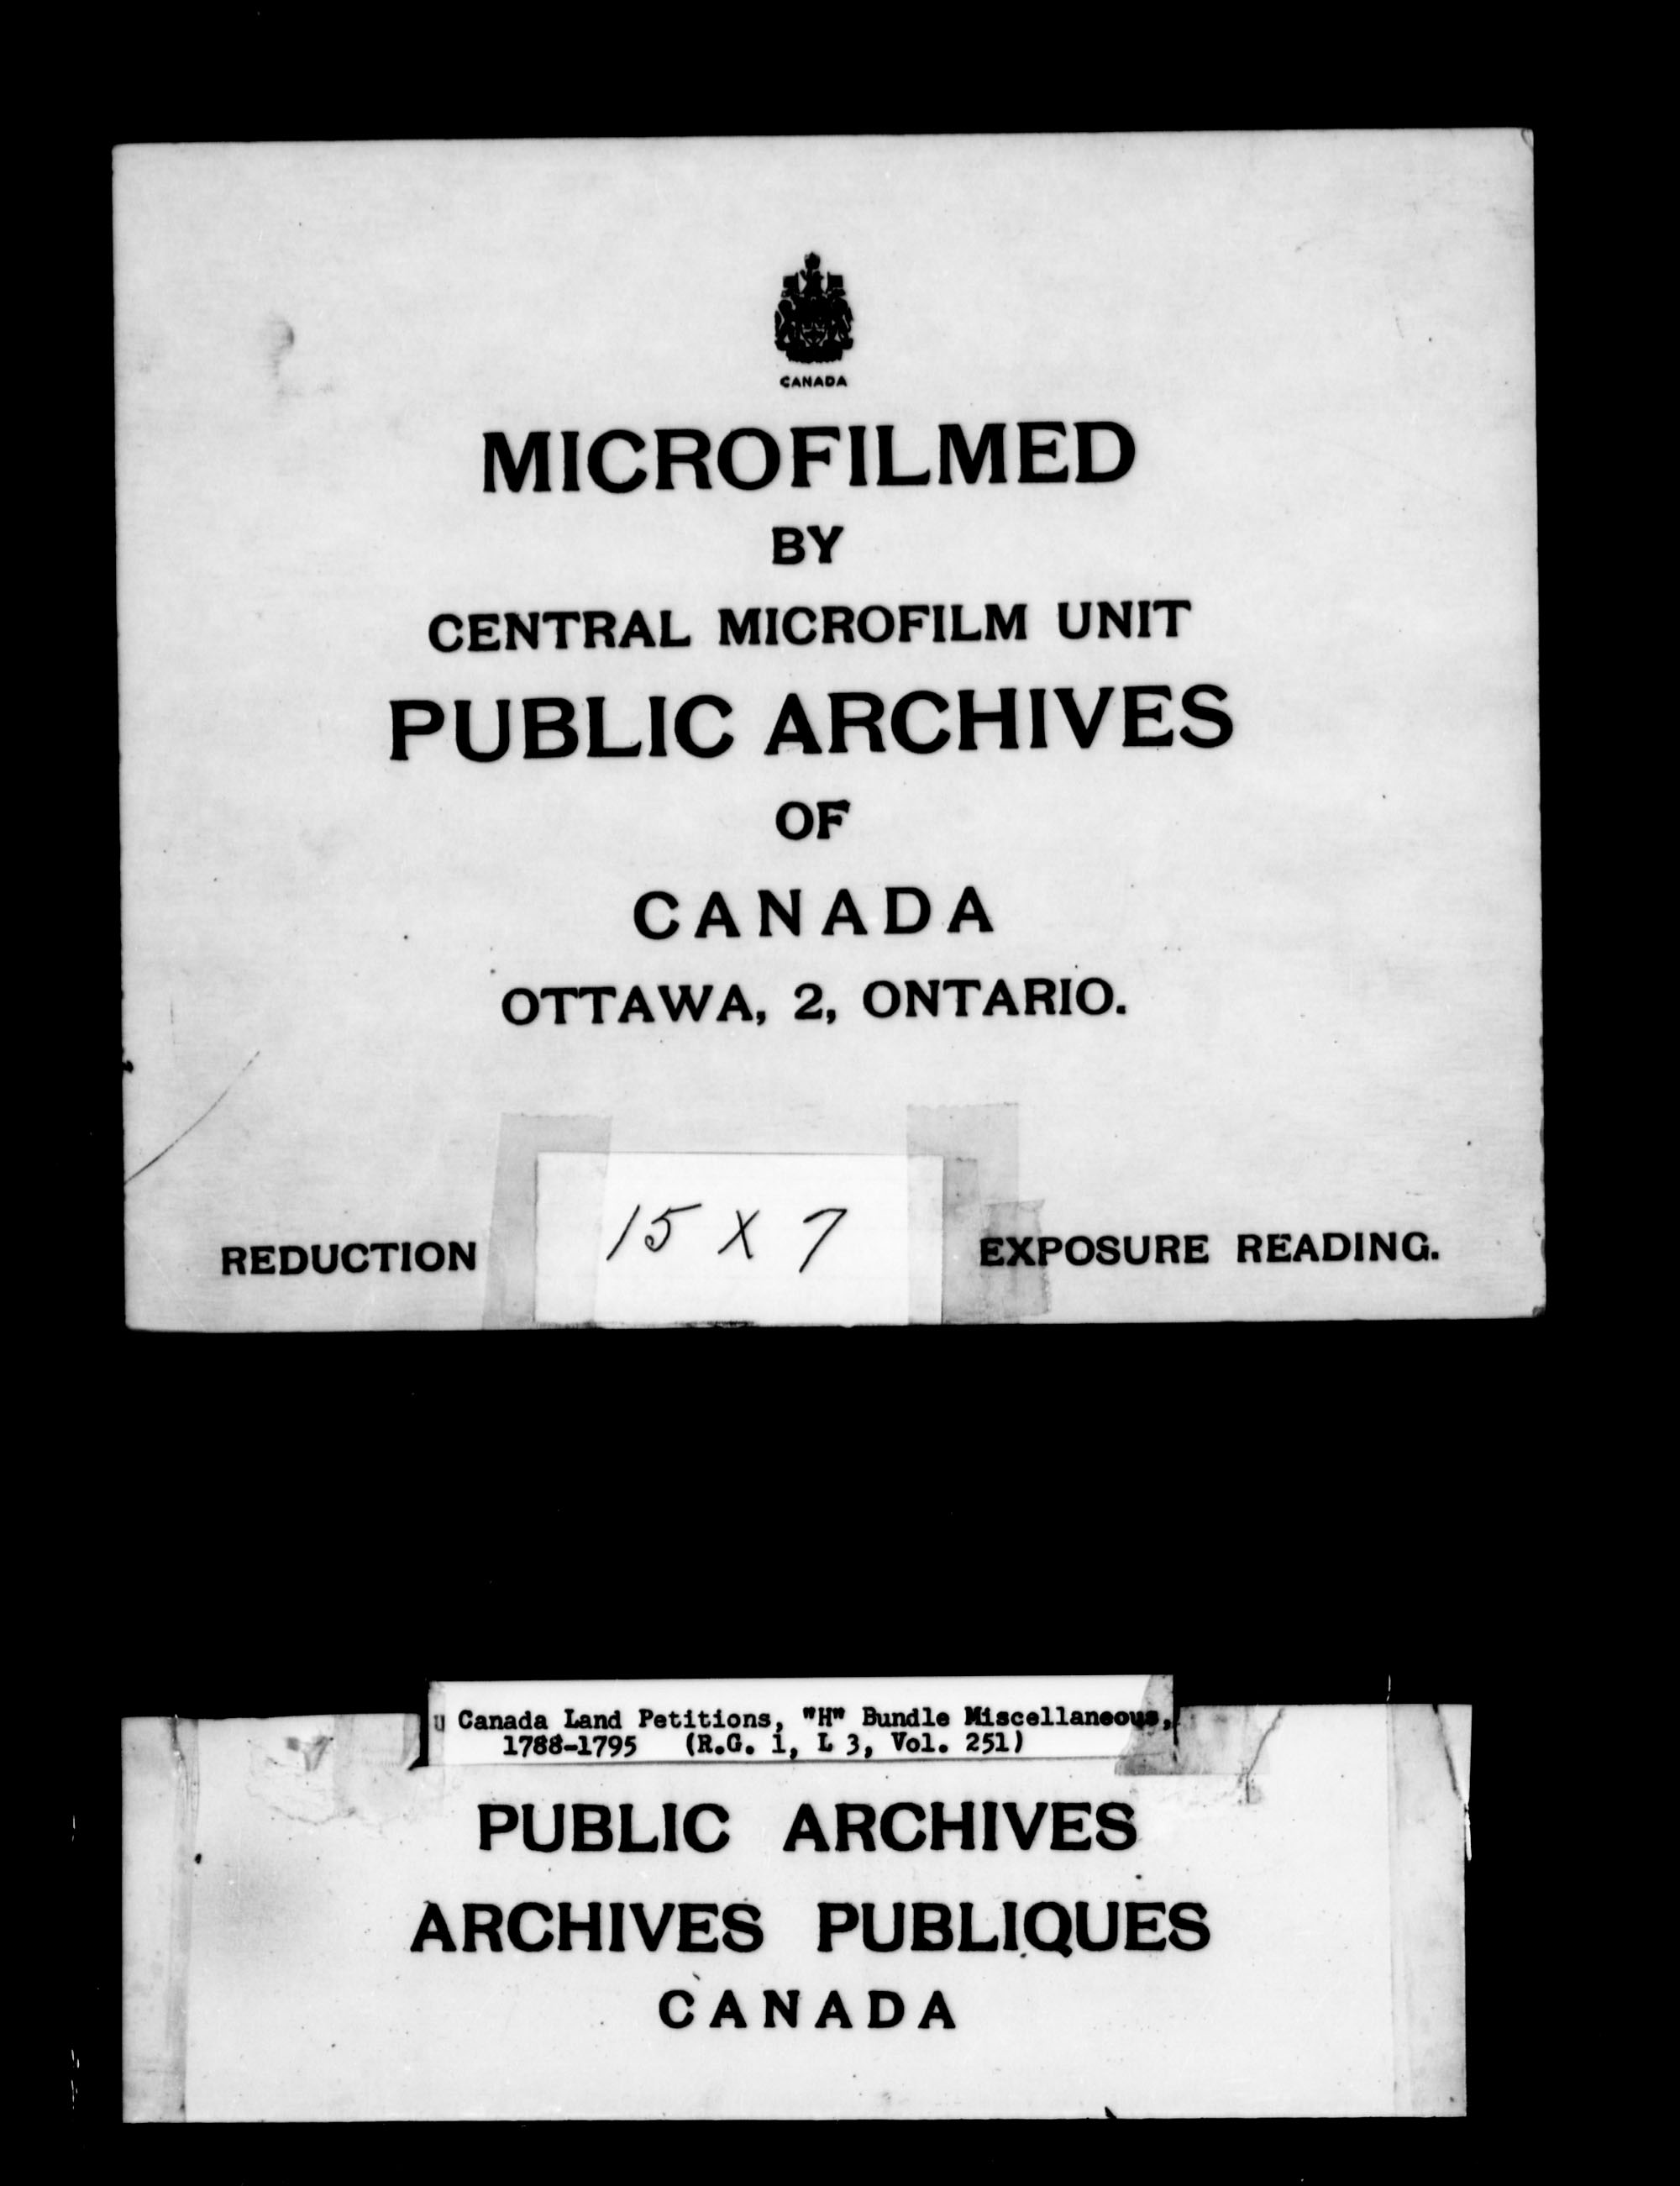 Title: Upper Canada Land Petitions (1763-1865) - Mikan Number: 205131 - Microform: c-2107